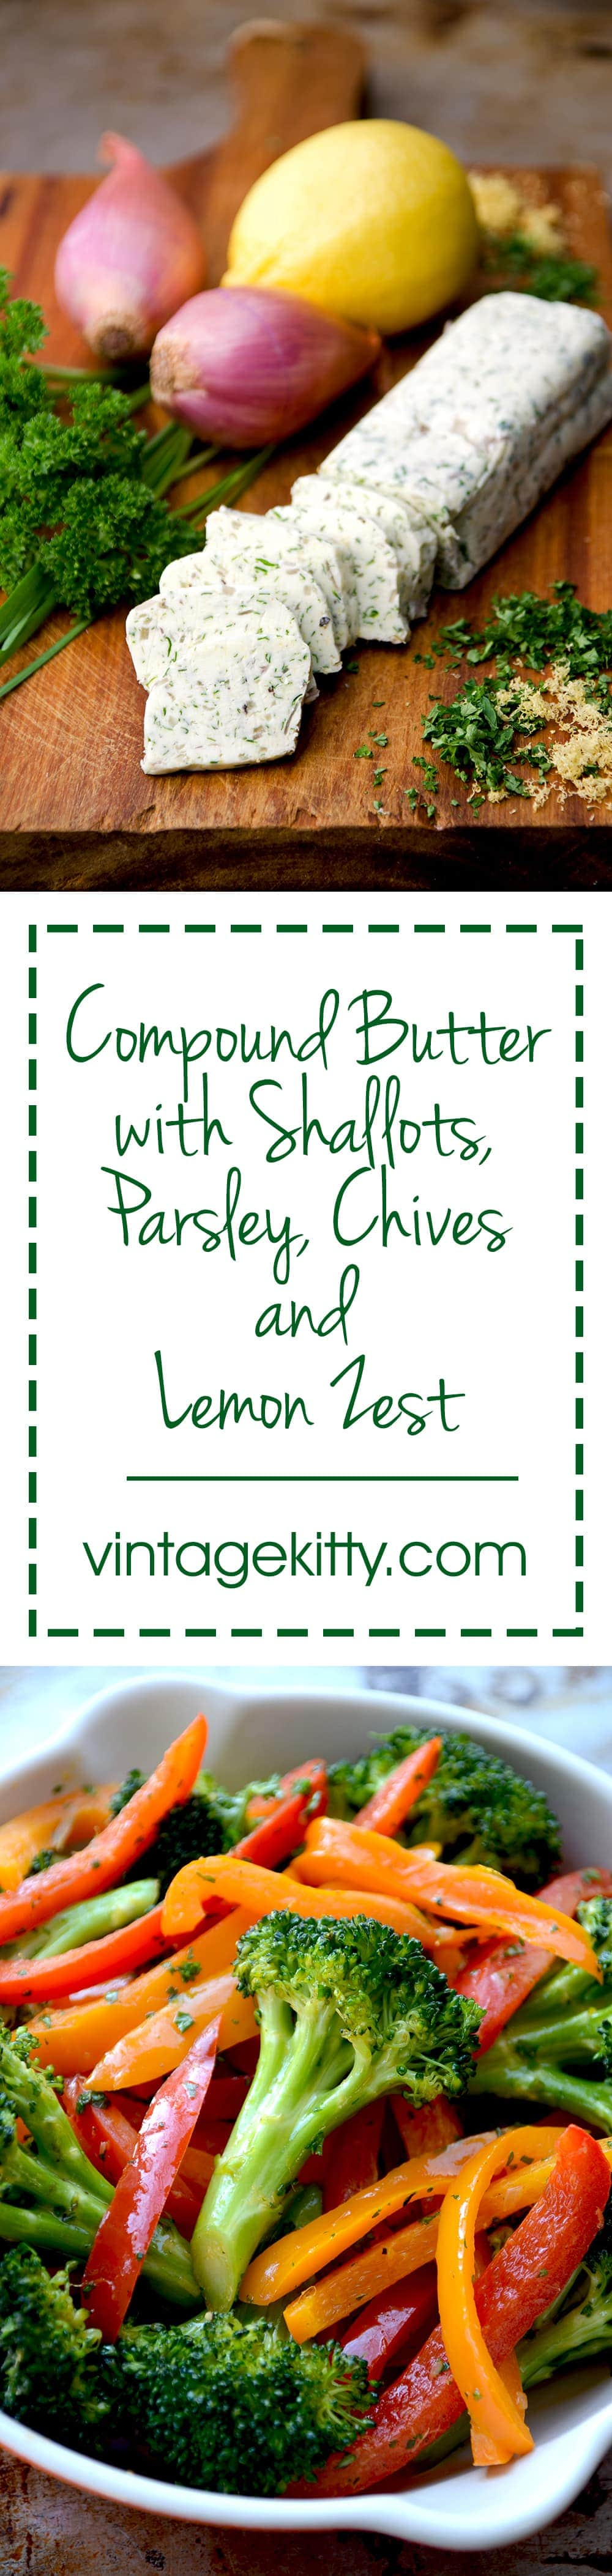 Compound Butter is a flavorful do-ahead trick for fast, delicious meals. This recipe uses shallots, lemon zest and herbs, but you can make your own variations with your favorite ingredients. | vintagekitty.com